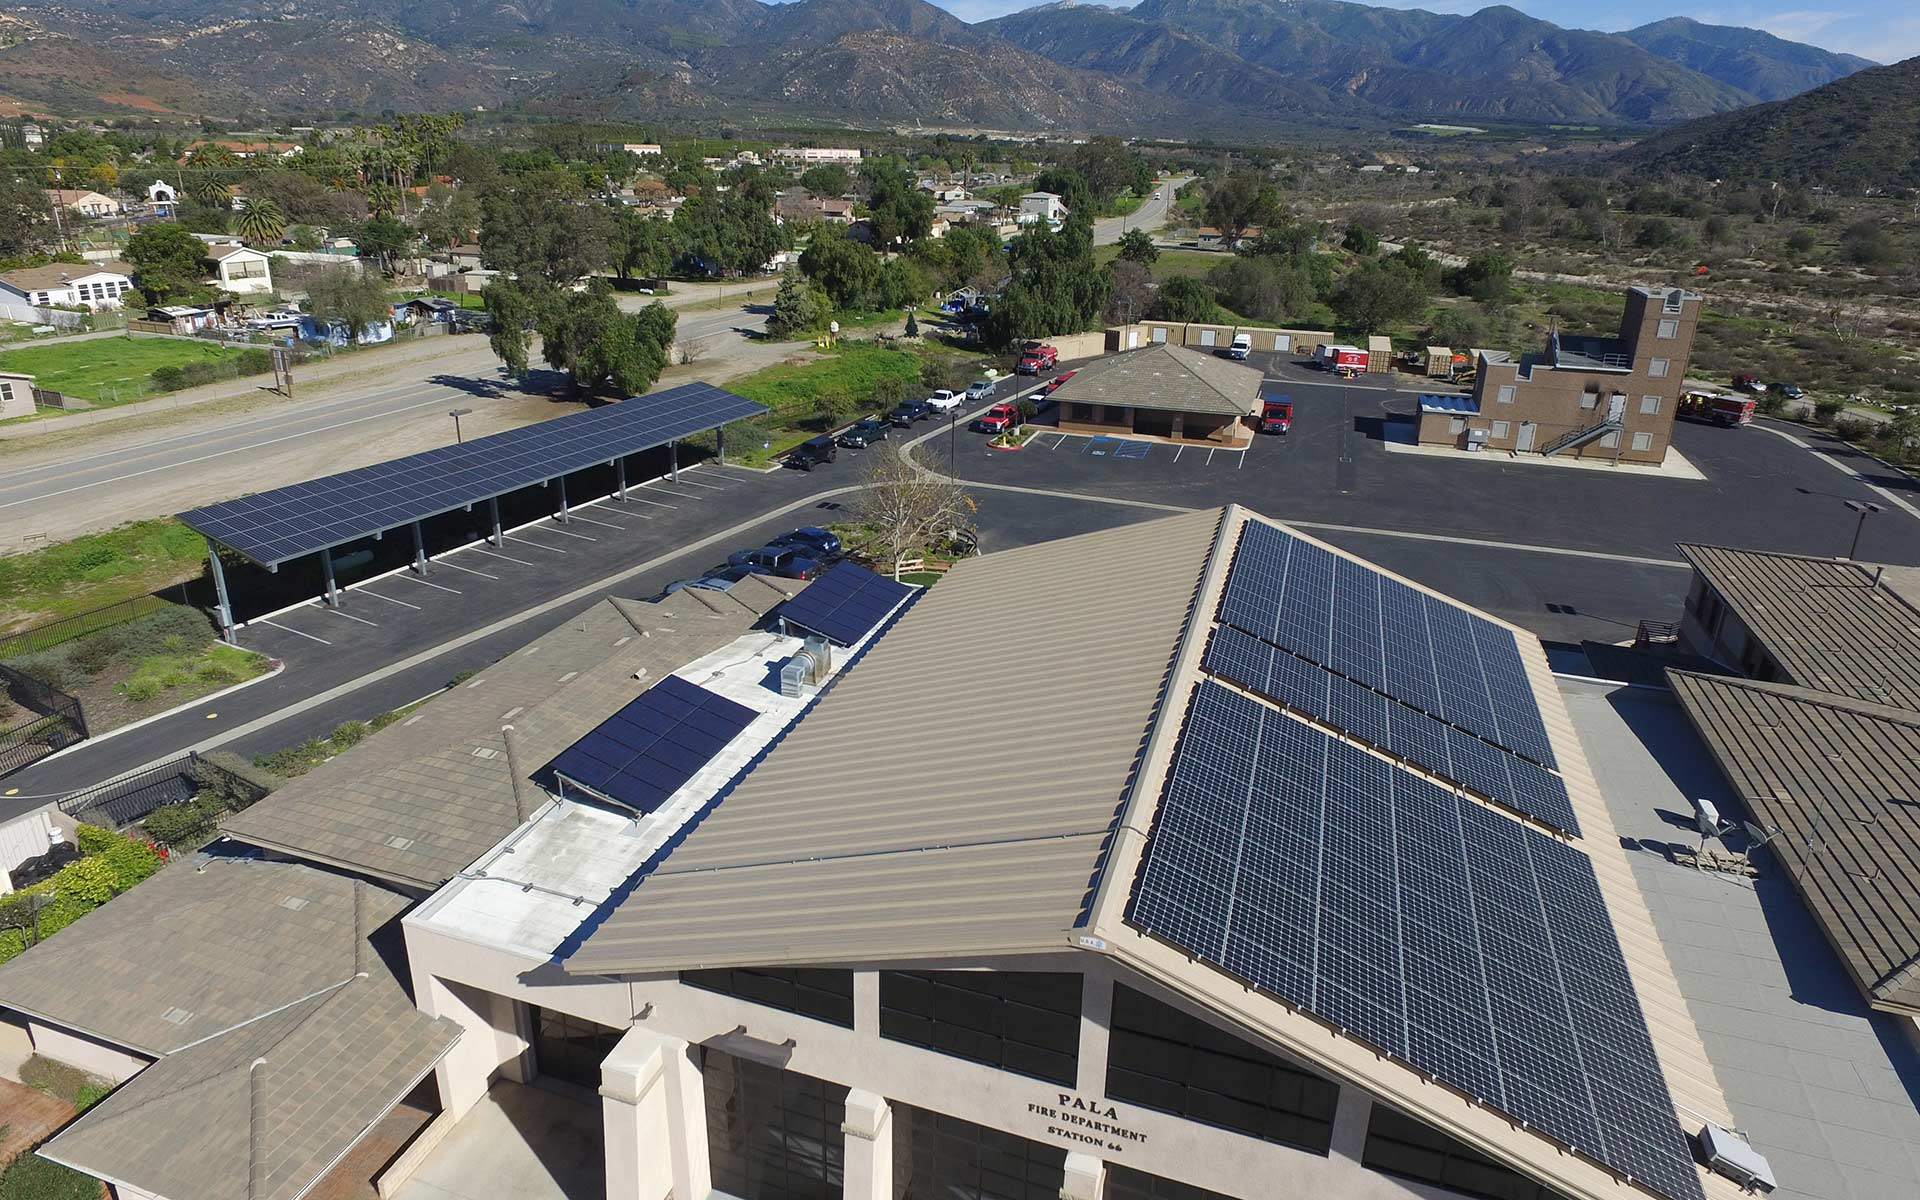 Pala Tribal Fire Station San Diego solar installation. Copyright 2017 Good Energy Solar, all rights reserved.